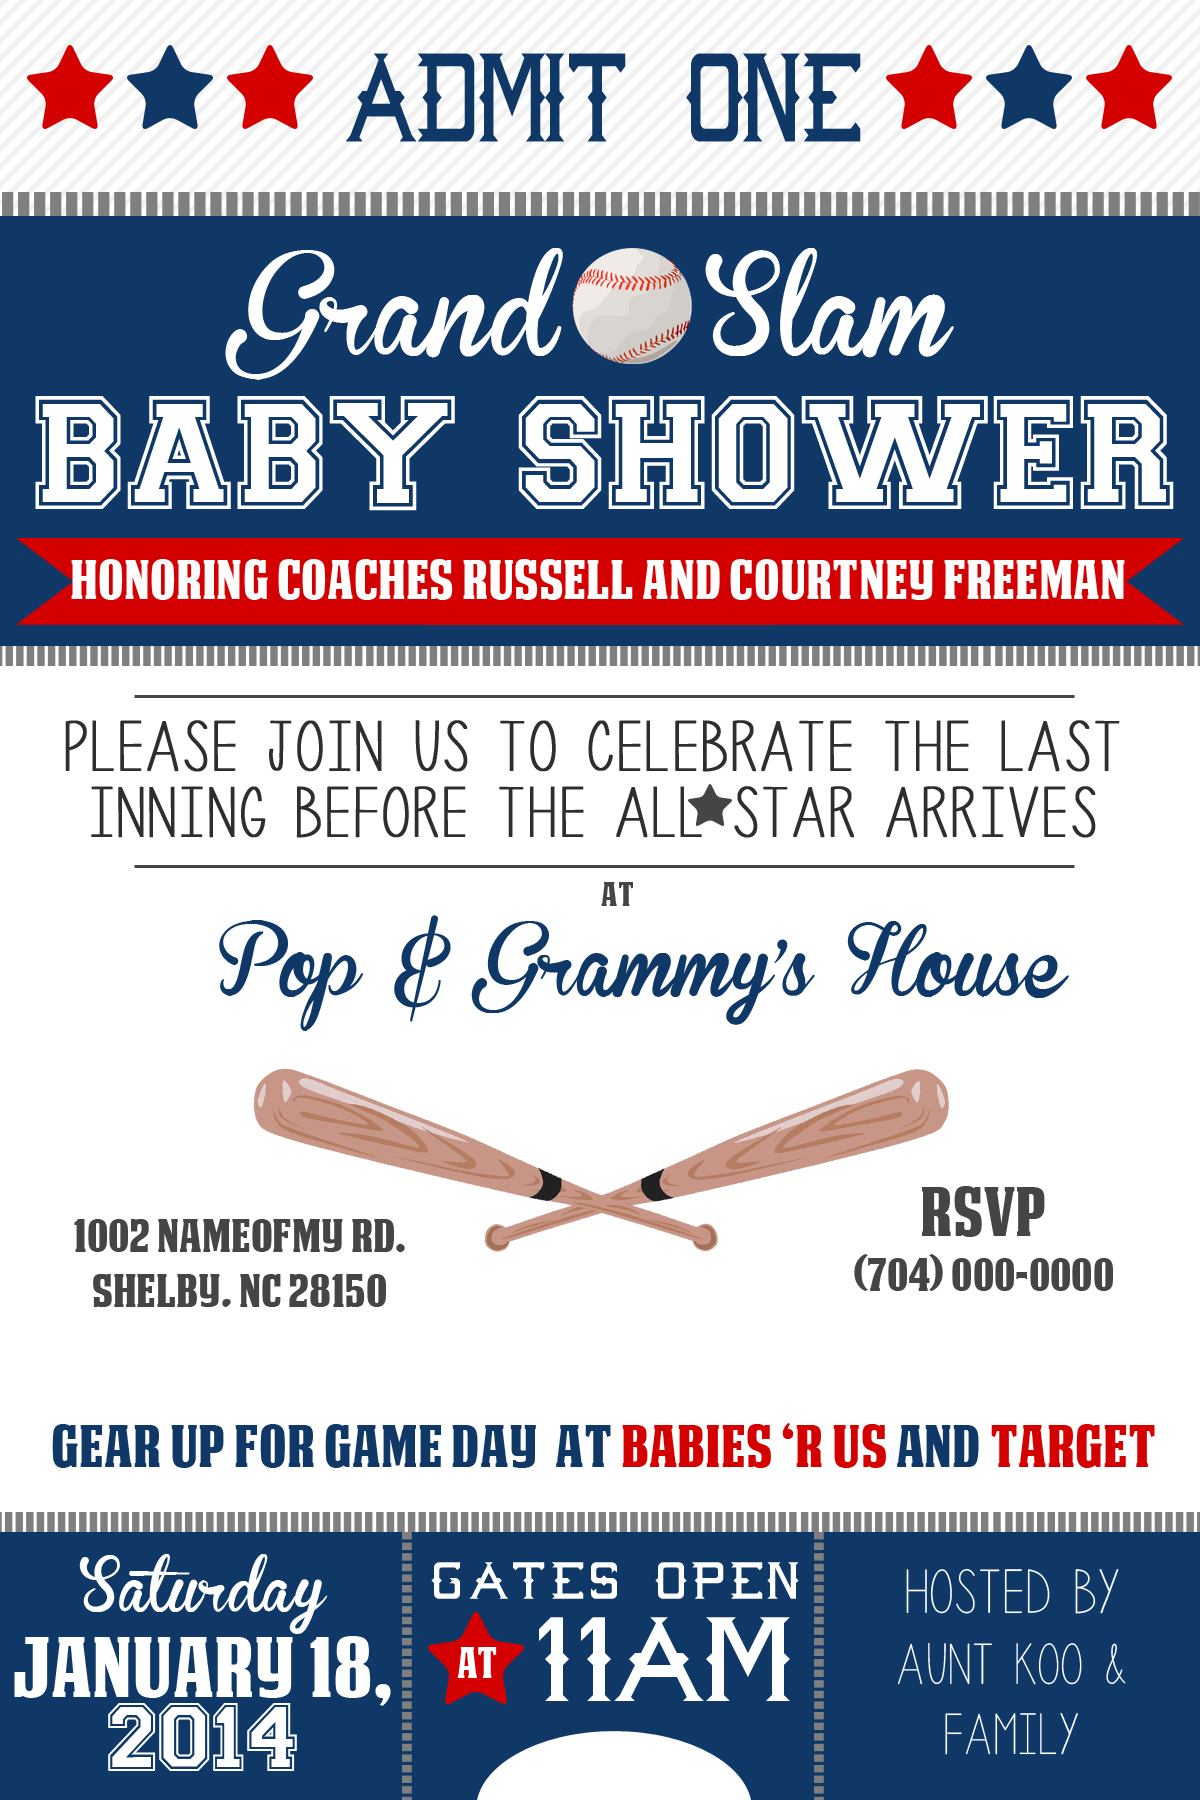 Baseball Themed Invitation Template Free from aprilwalkerblog.files.wordpress.com